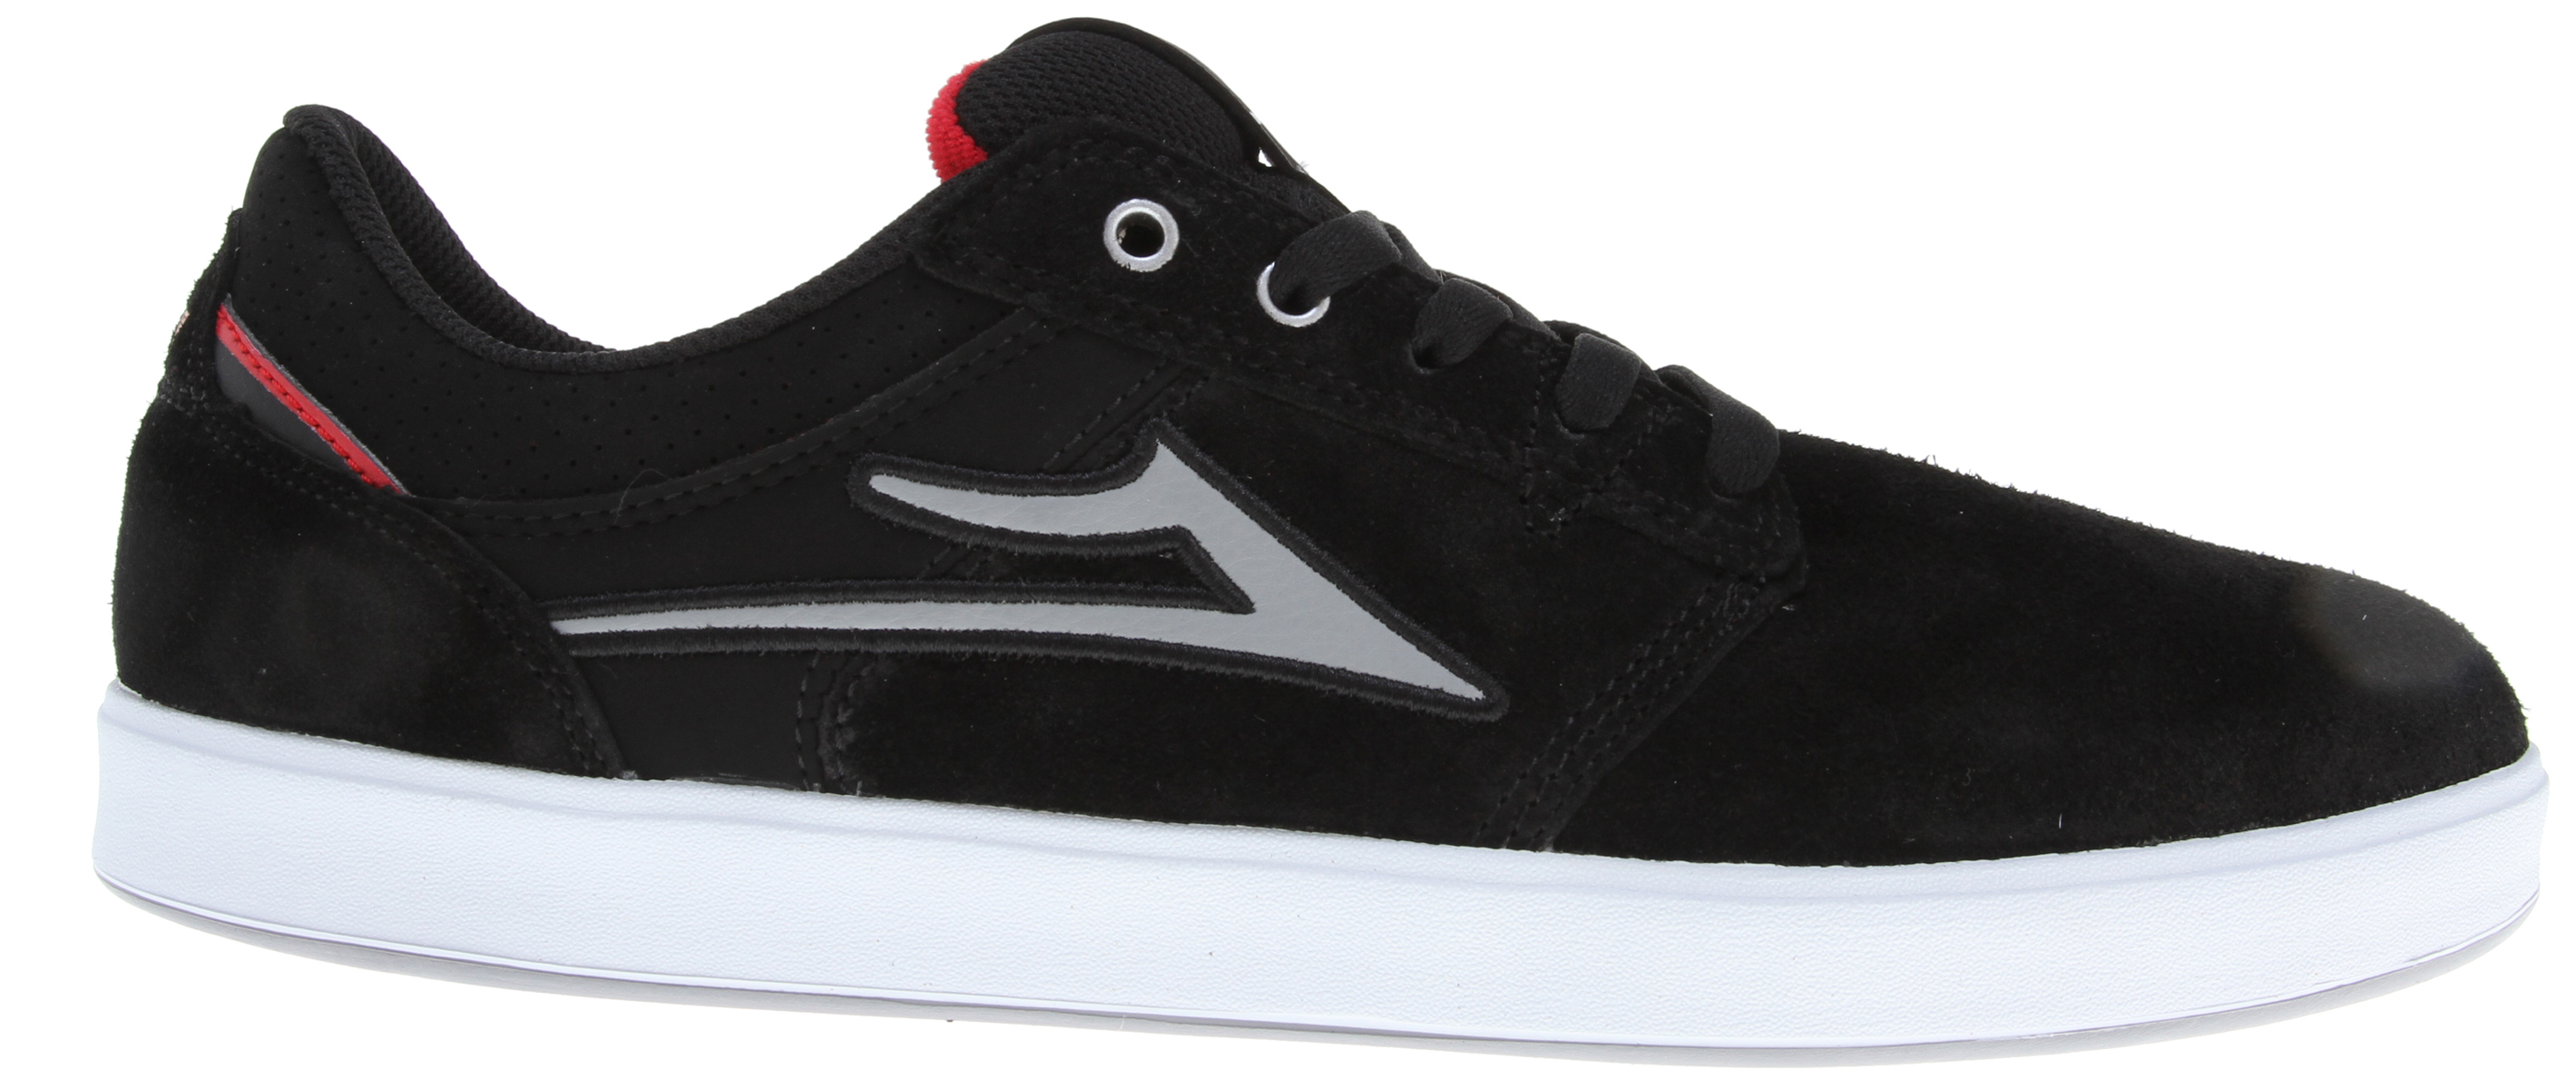 Skateboard Key Features of the Lakai Linden Skate Shoes: Lightweight performance engineered XLK™ sole construction with herringbone tread pattern Molded EVA sockliner for added comfort Form fitting upper for increased board feel Durable suede and nubuck upper with double stitched panel reinforcements Full-length shock absorbing insole - $48.95